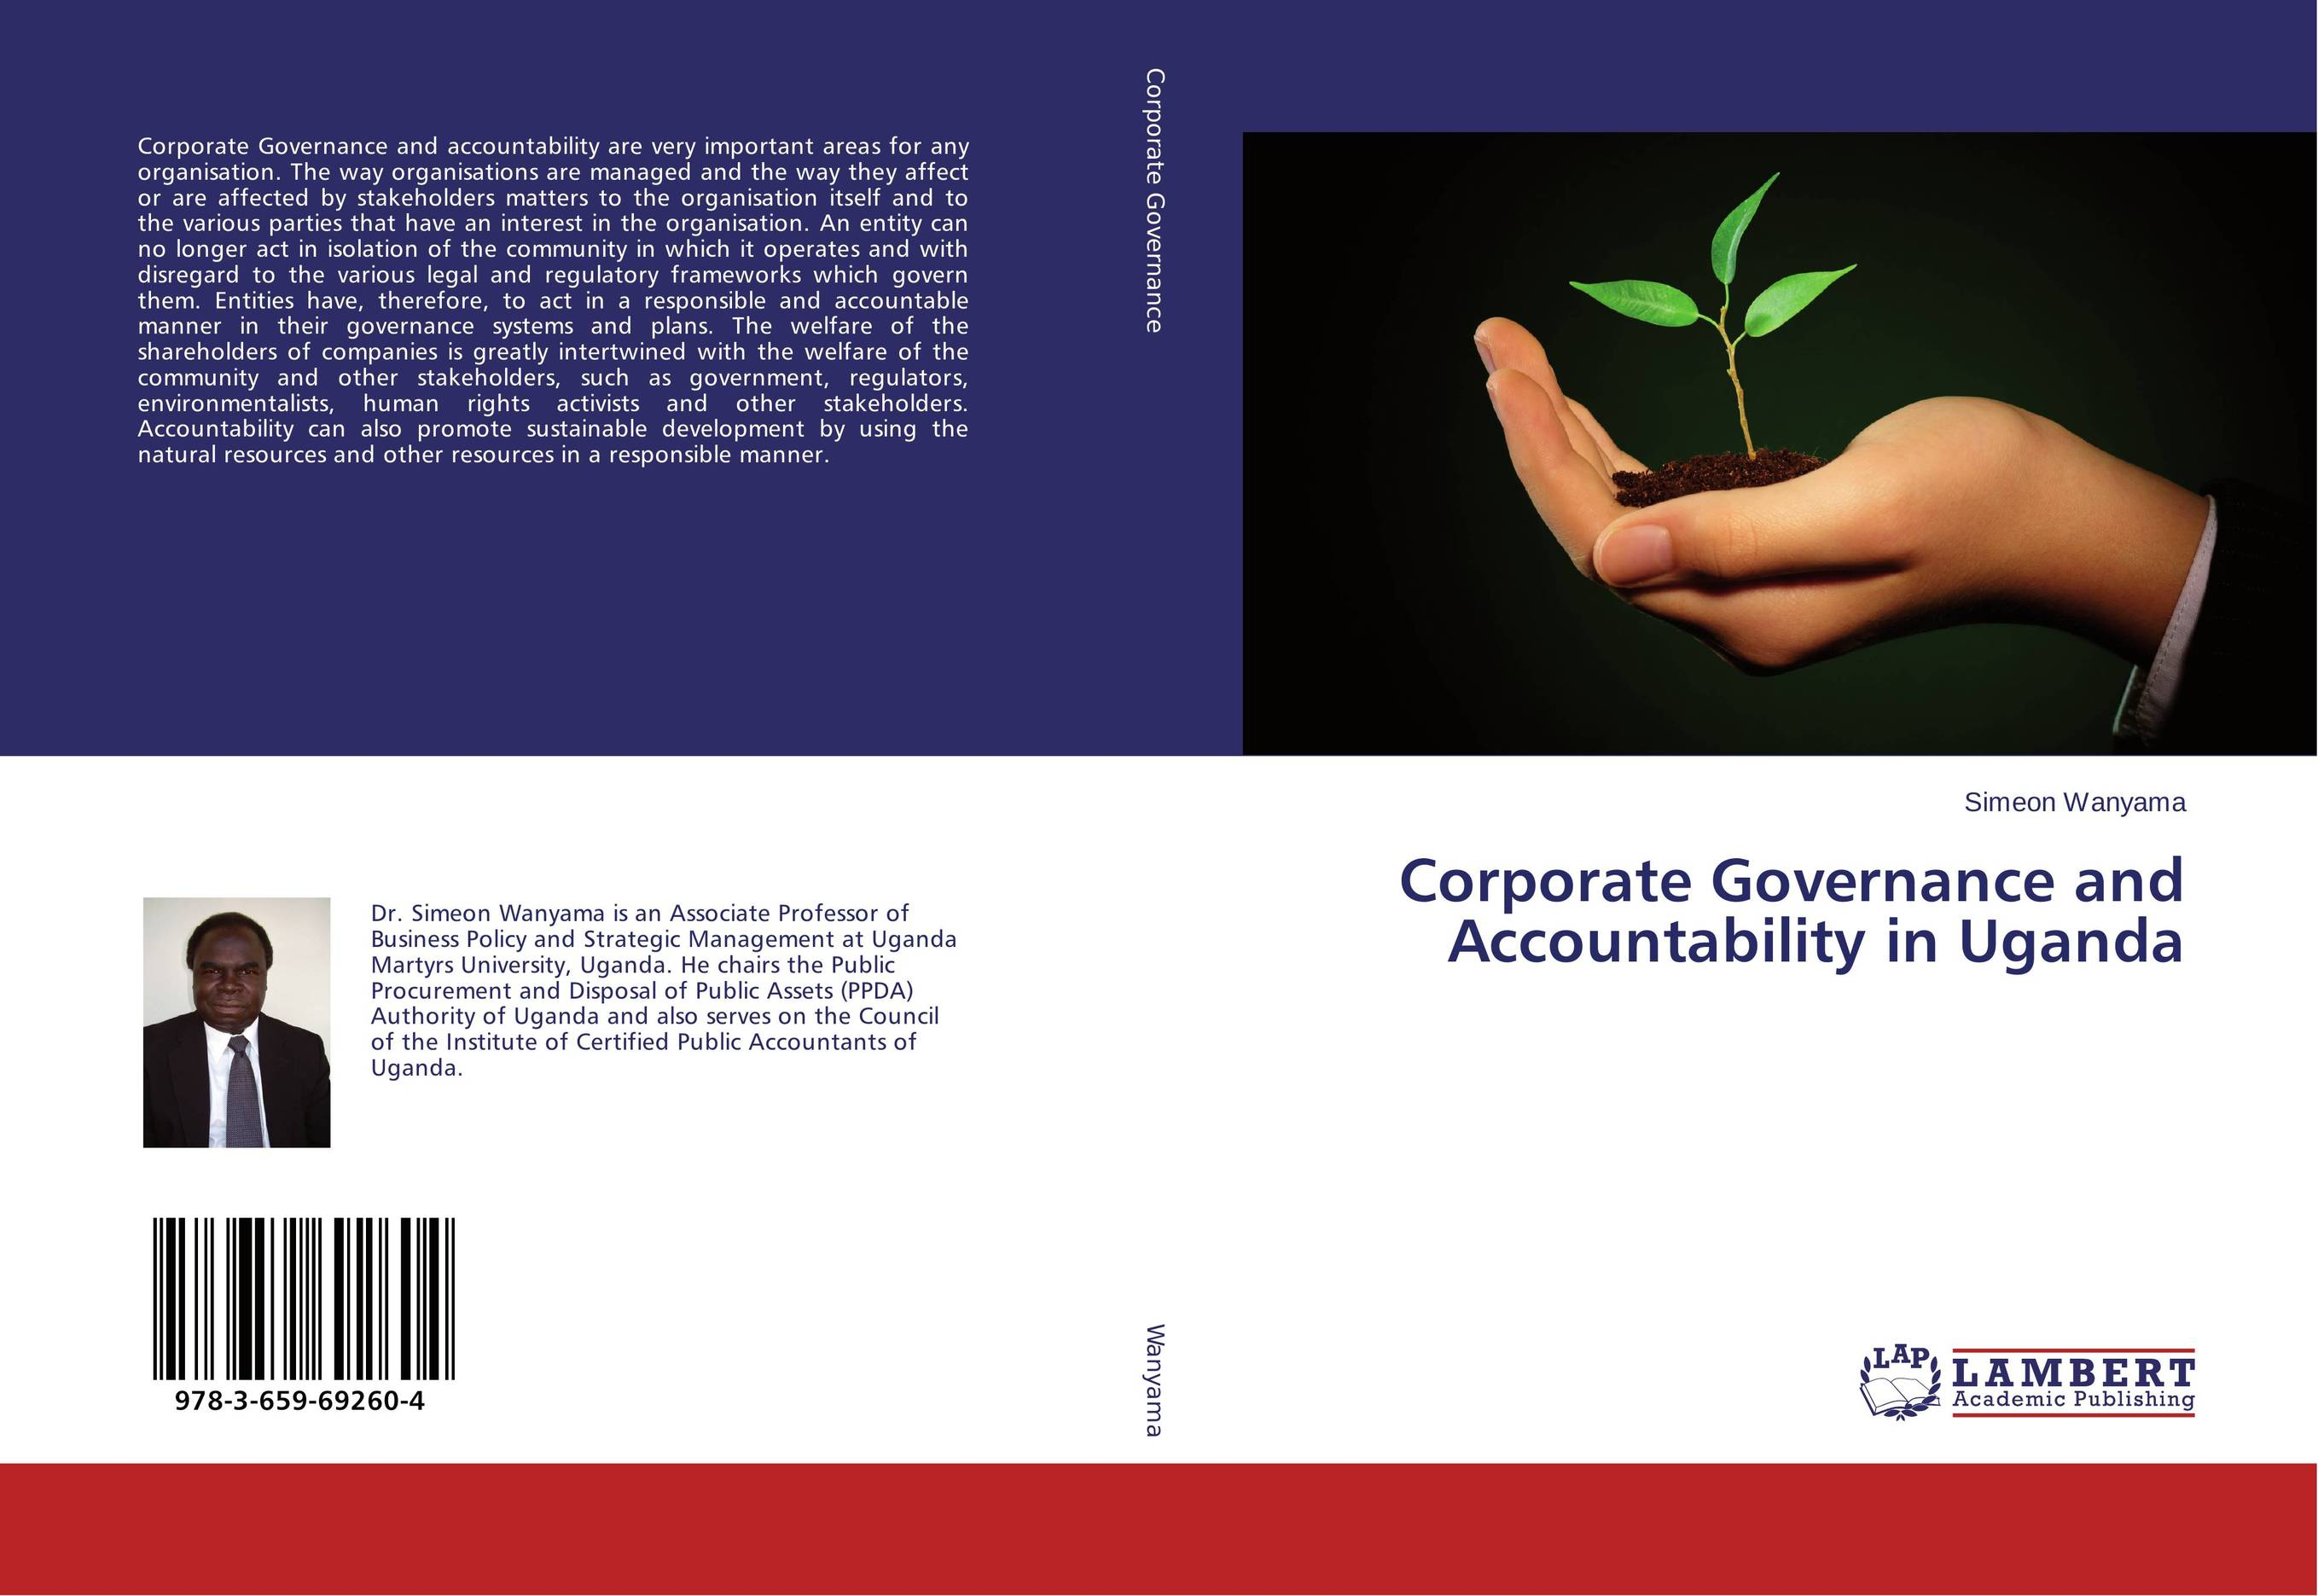 Corporate Governance and Accountability in Uganda